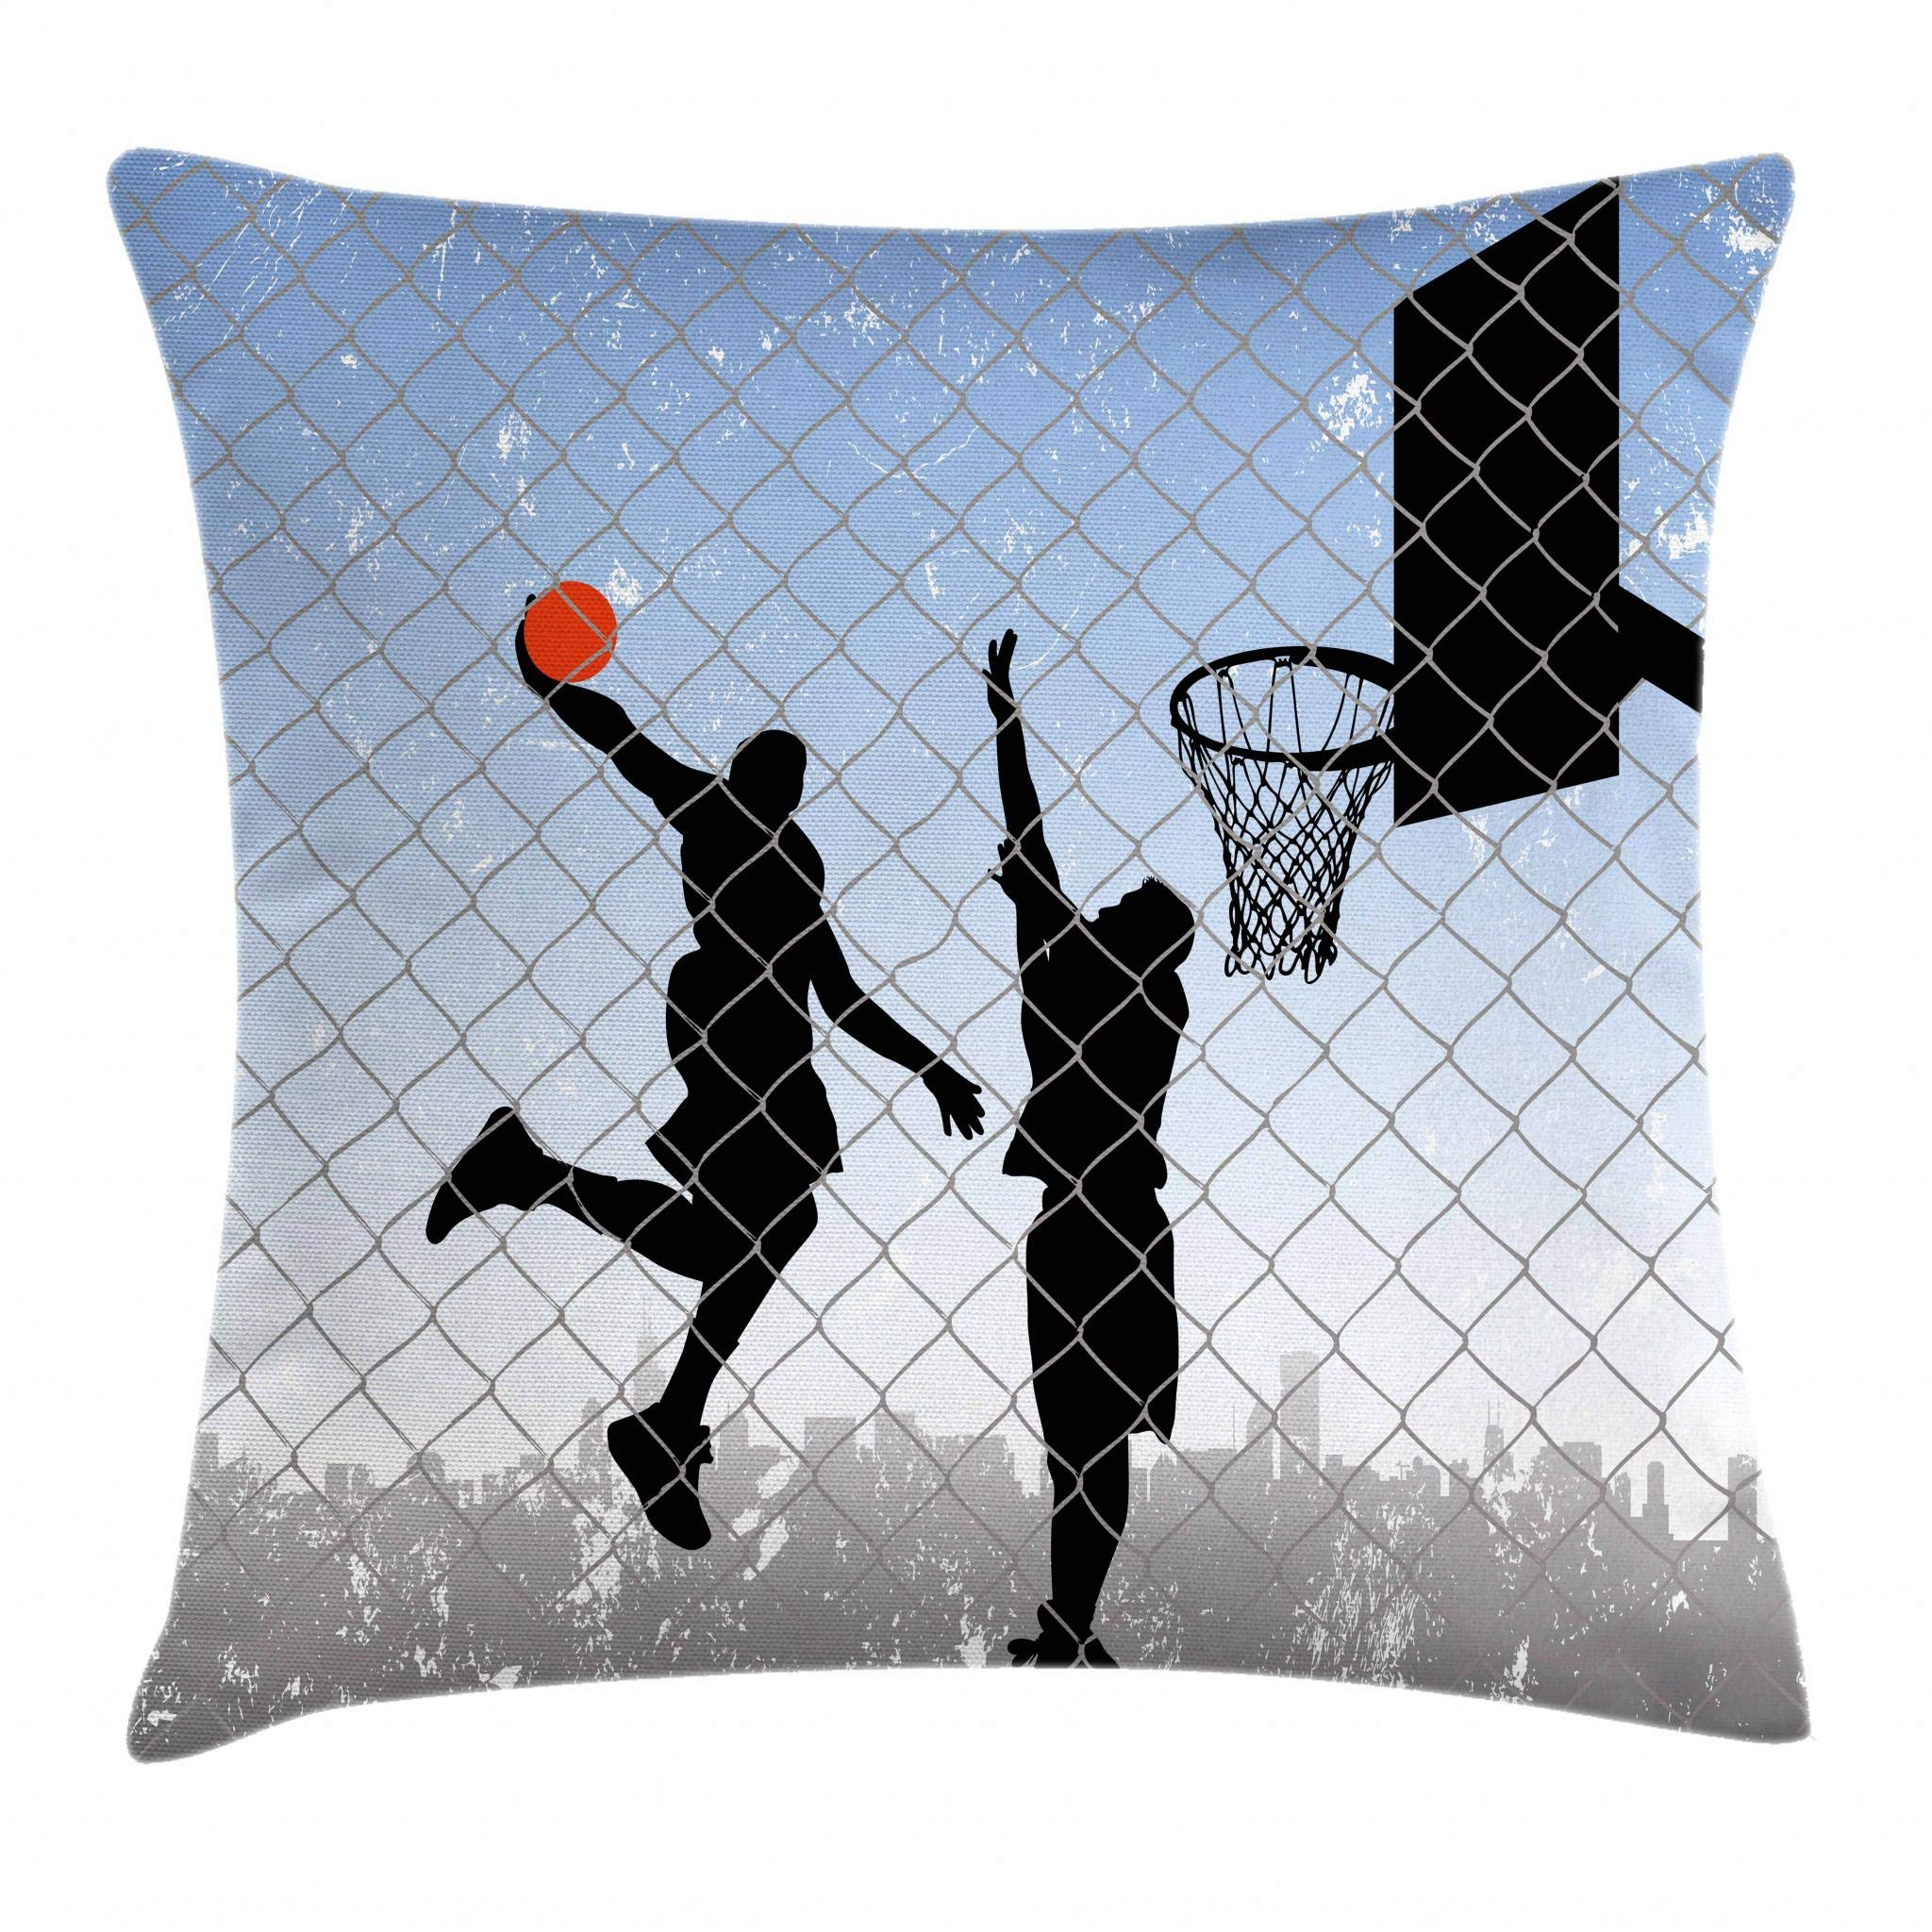 Lunarable Boy's Room Throw Pillow Cushion Cover, Basketball in The Street Theme Two Players on Grungy Damaged Backdrop, Decorative Square Accent Pillow Case, 18 X 18 Inches, Pale Blue Grey Black